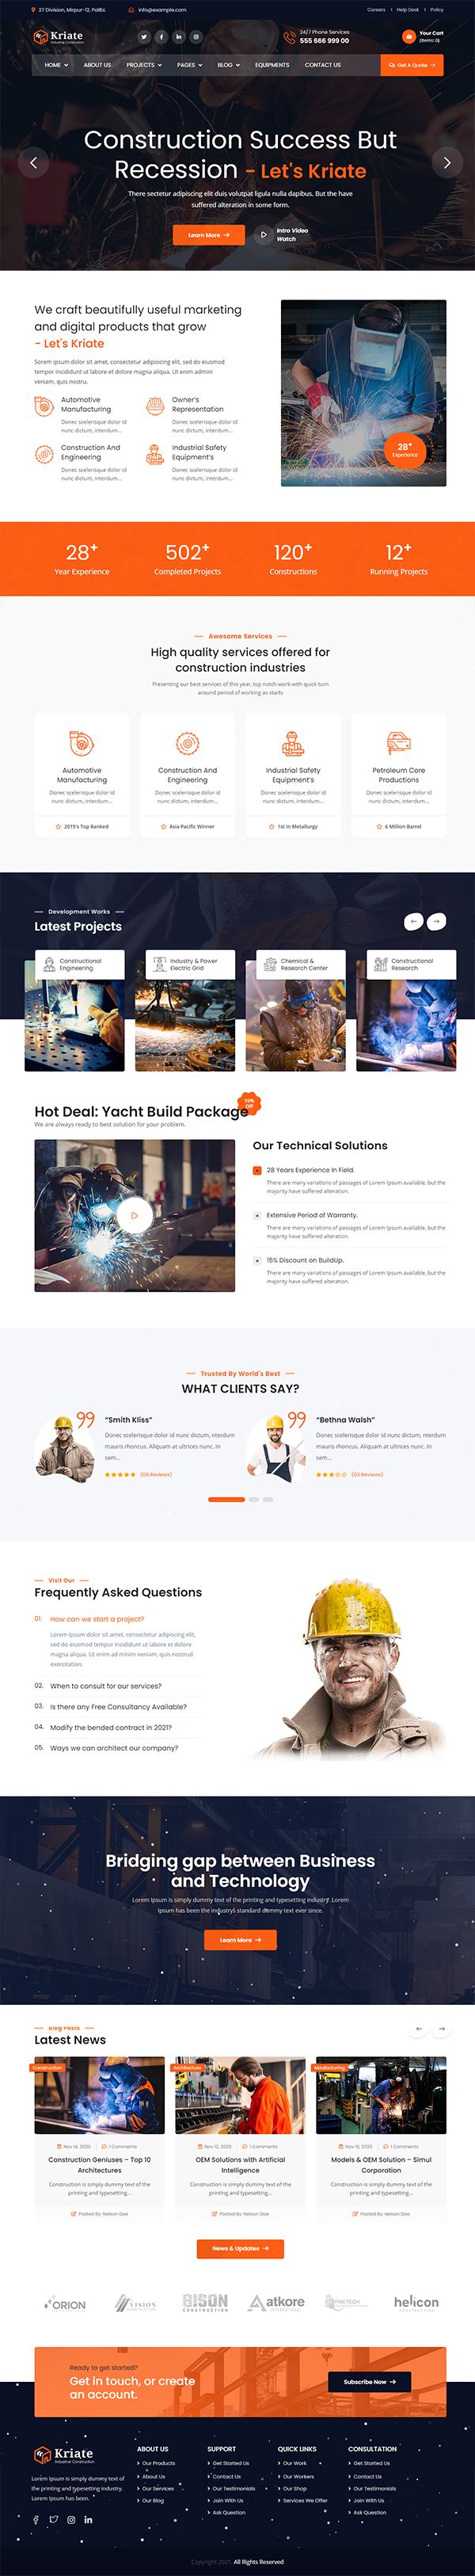 Kriate - Industrial Construction WordPress Theme